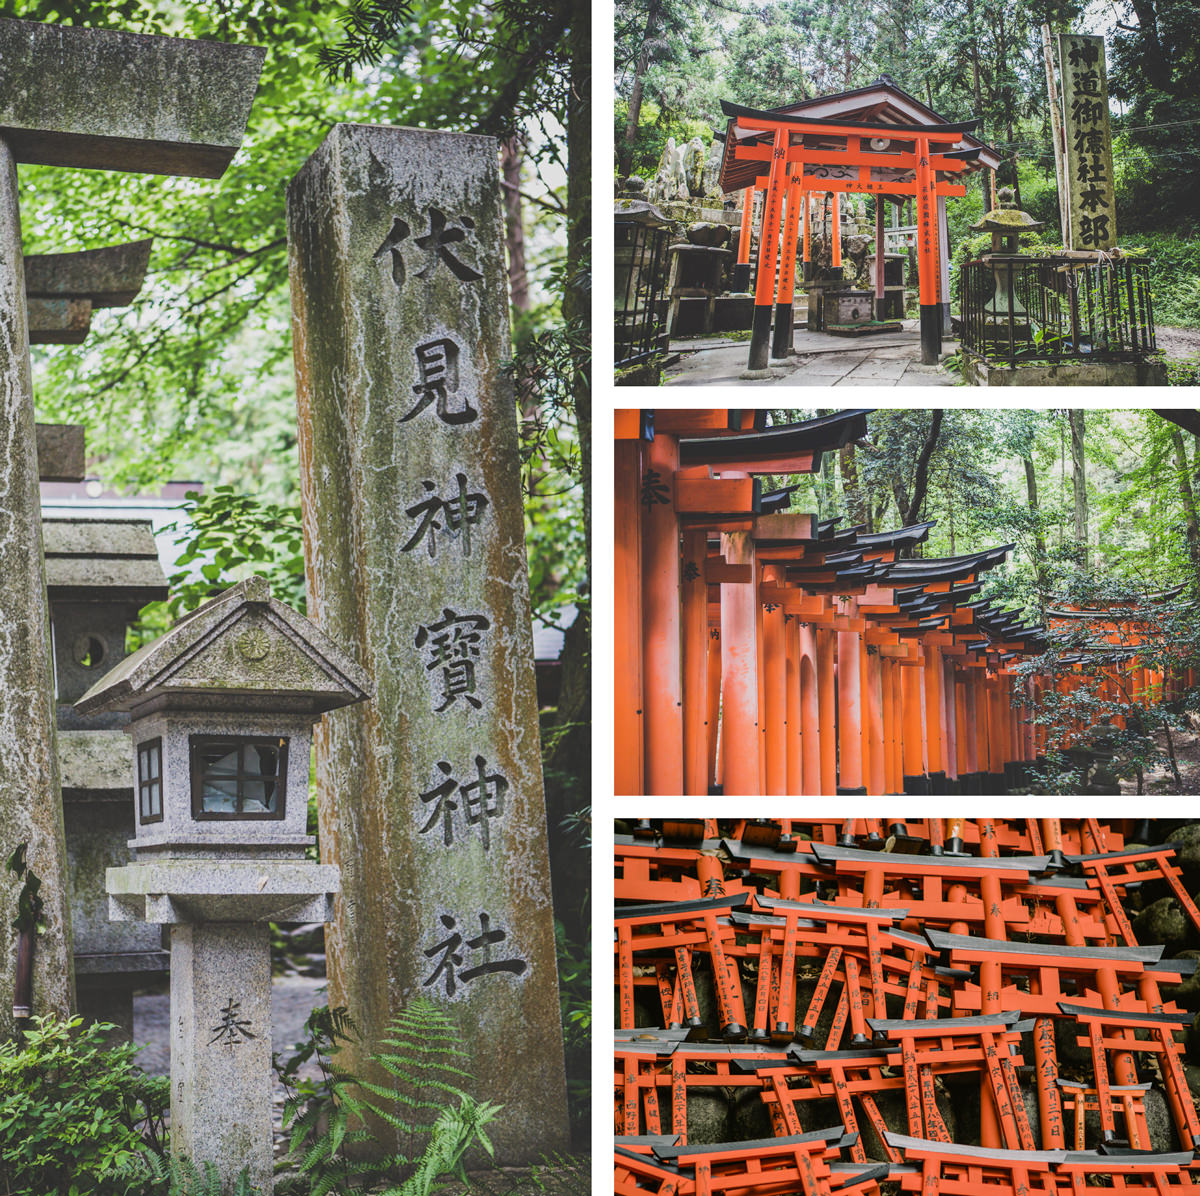 impressions of tempes in kyoto - travel photography